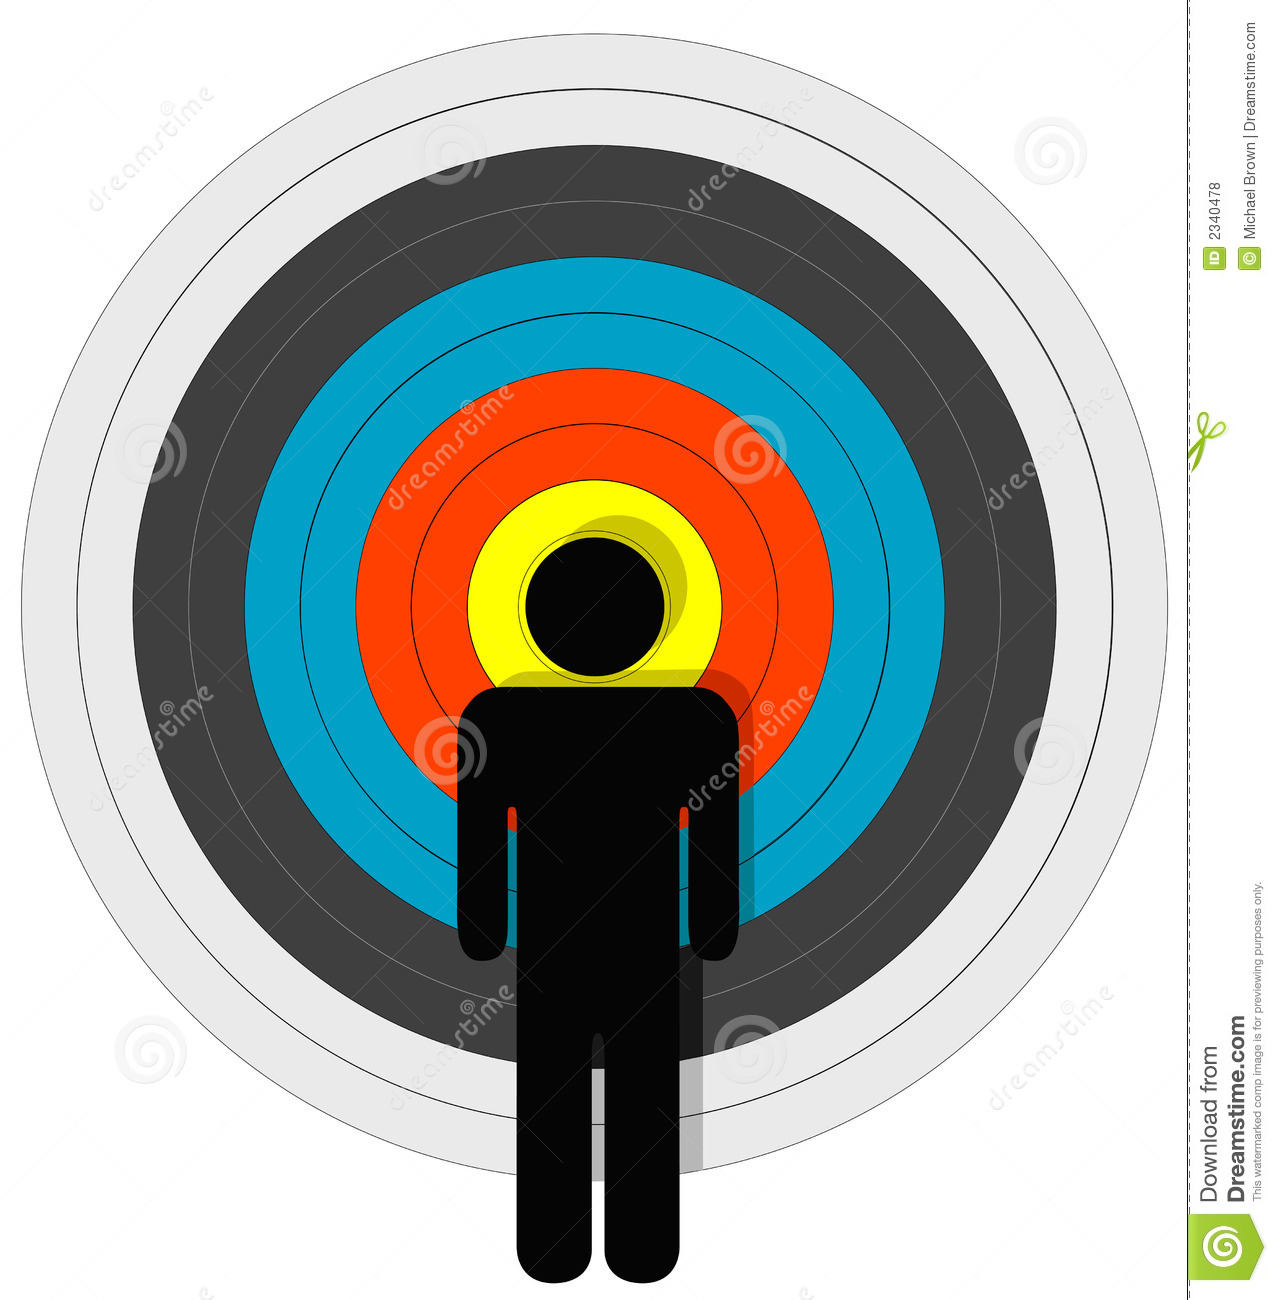 targeted person in bullseye royalty free stock photos image 2340478